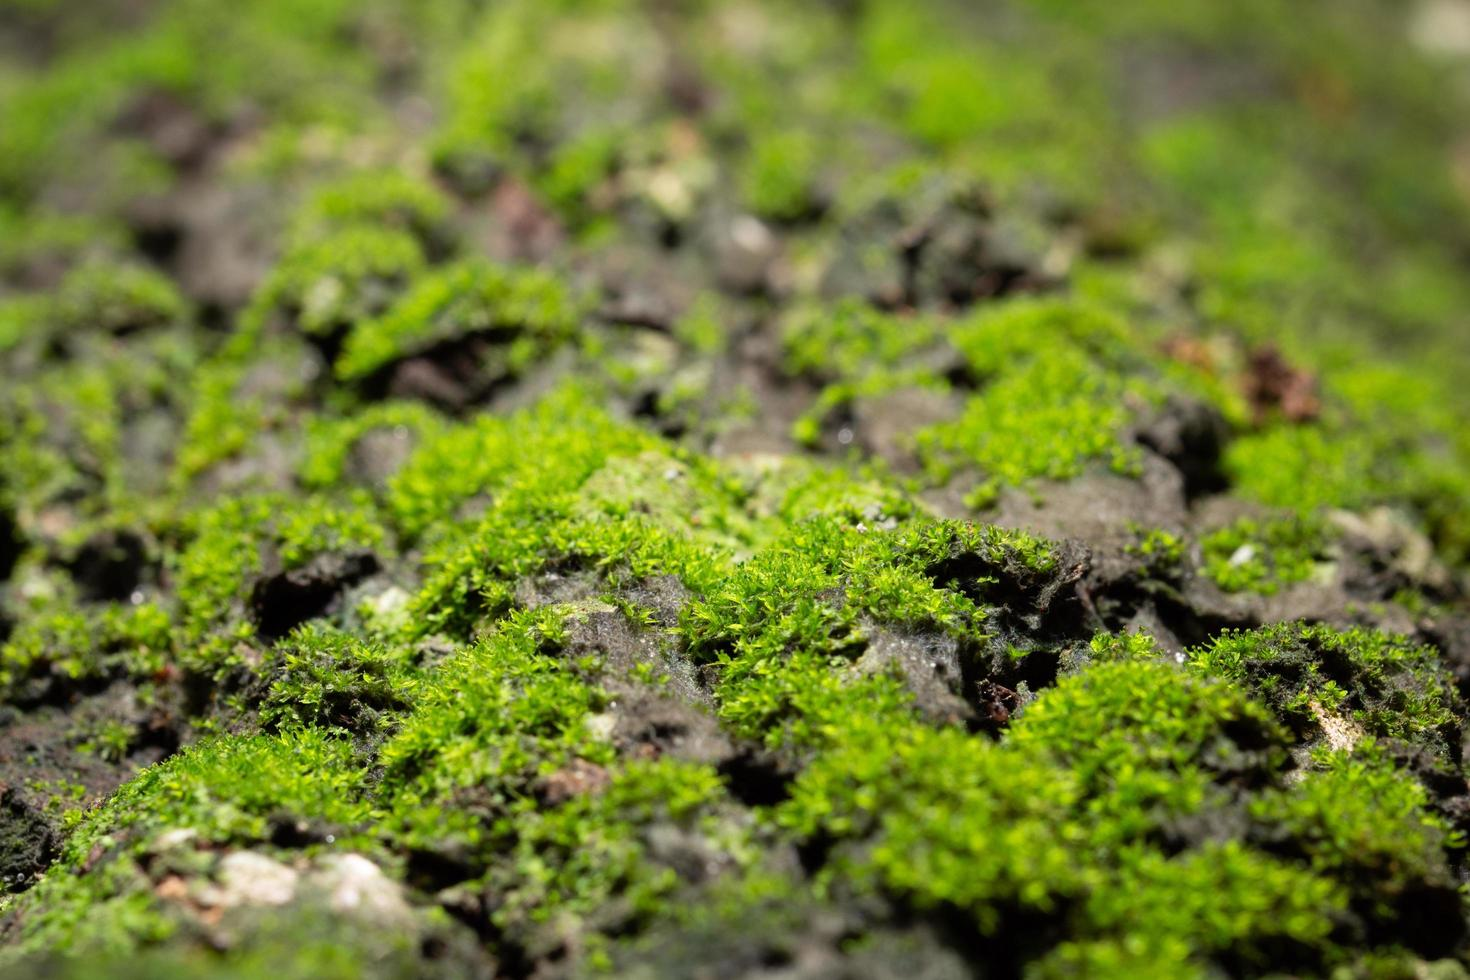 Macro moss on the surface of a tree in nature photo